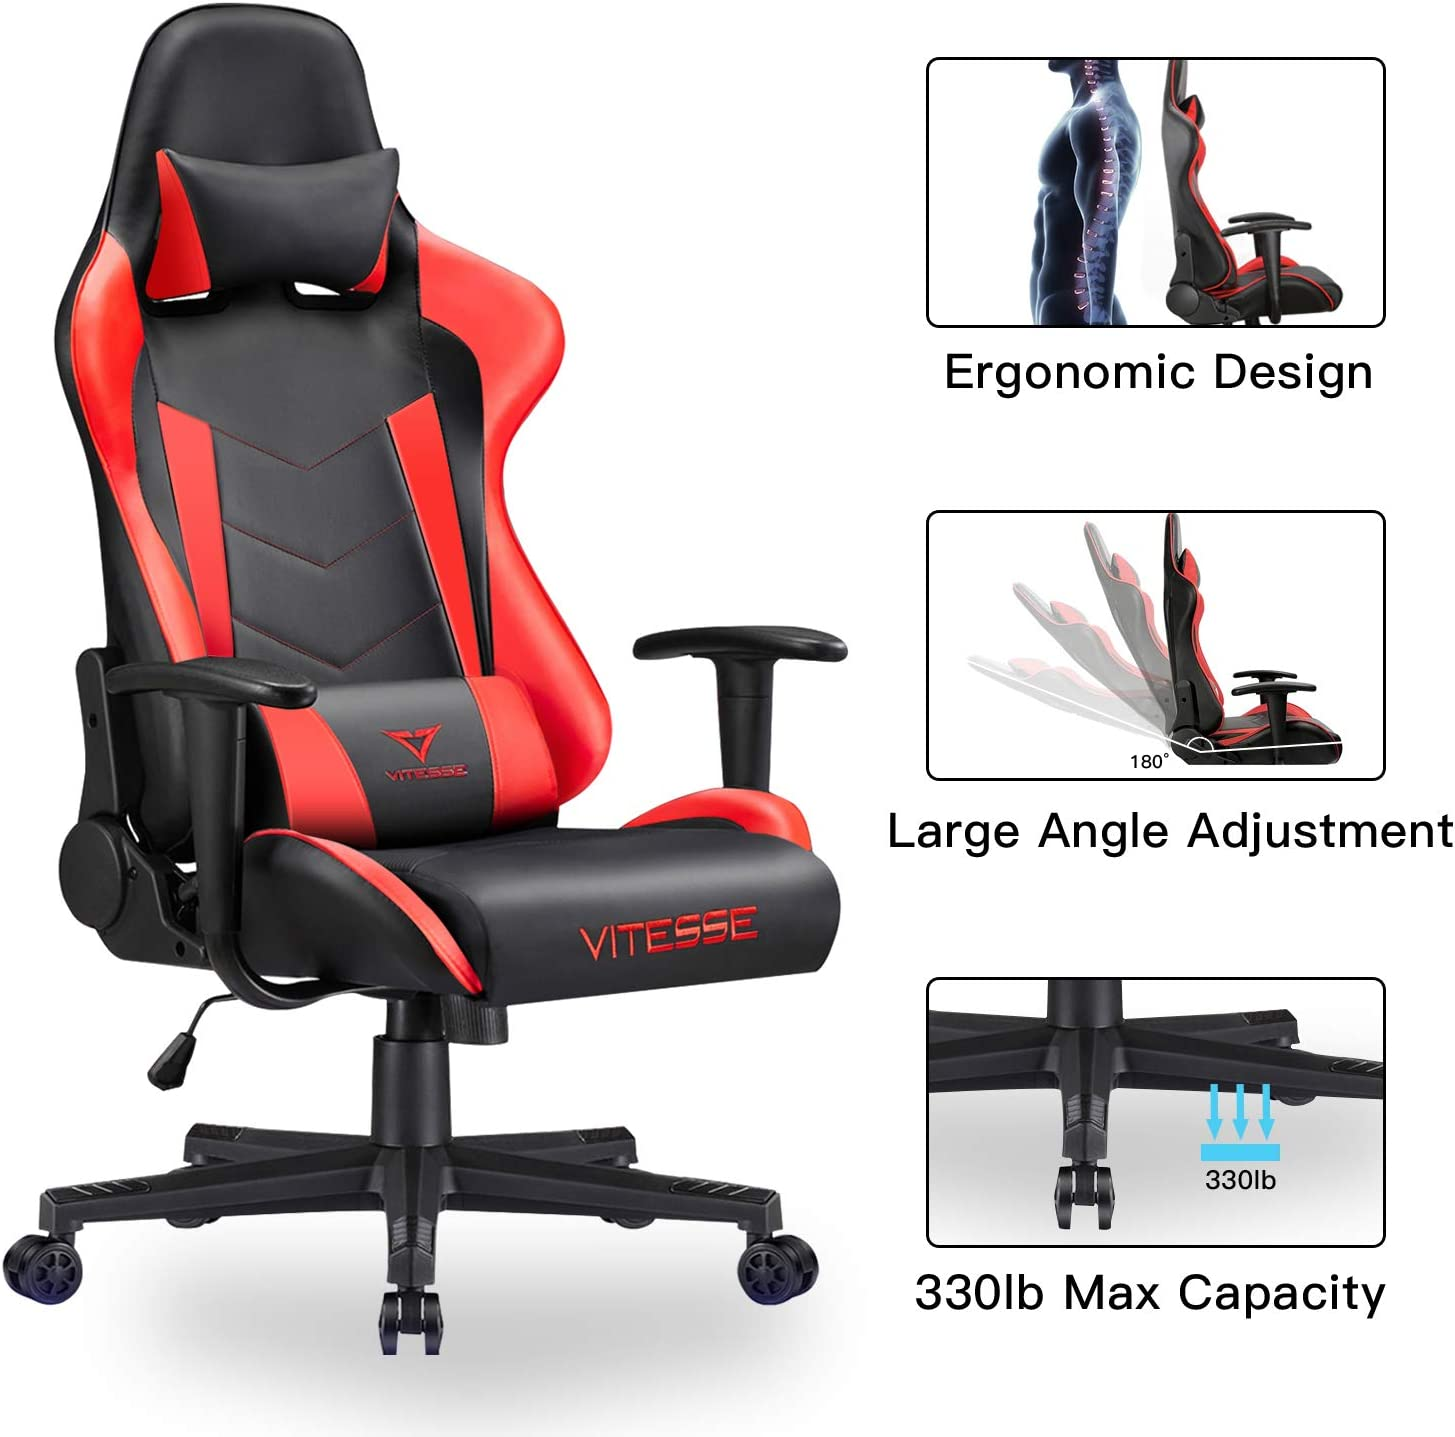 Vitesse Gaming Chair Racing Style High-Back PC Chair Ergonomic Office Desk Chair Swivel E-Sports Leather Computer Chair with Lumbar Support and Headrest (Red)